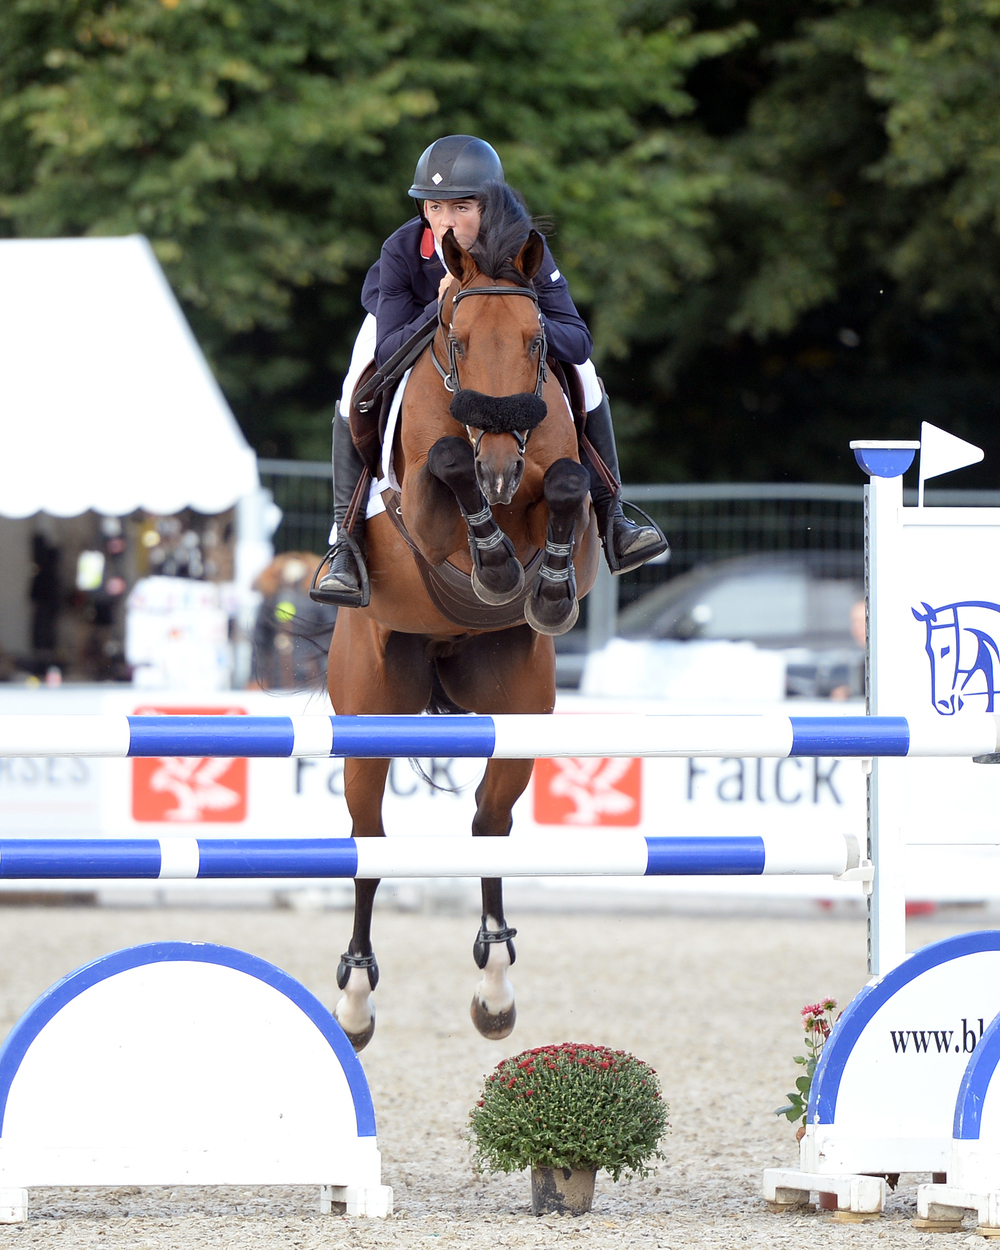 Jack Whitaker with Elando Van De Roshoeve wins individual gold at the FEI Pony European Championships 2016 (Credit: British Showjumping)